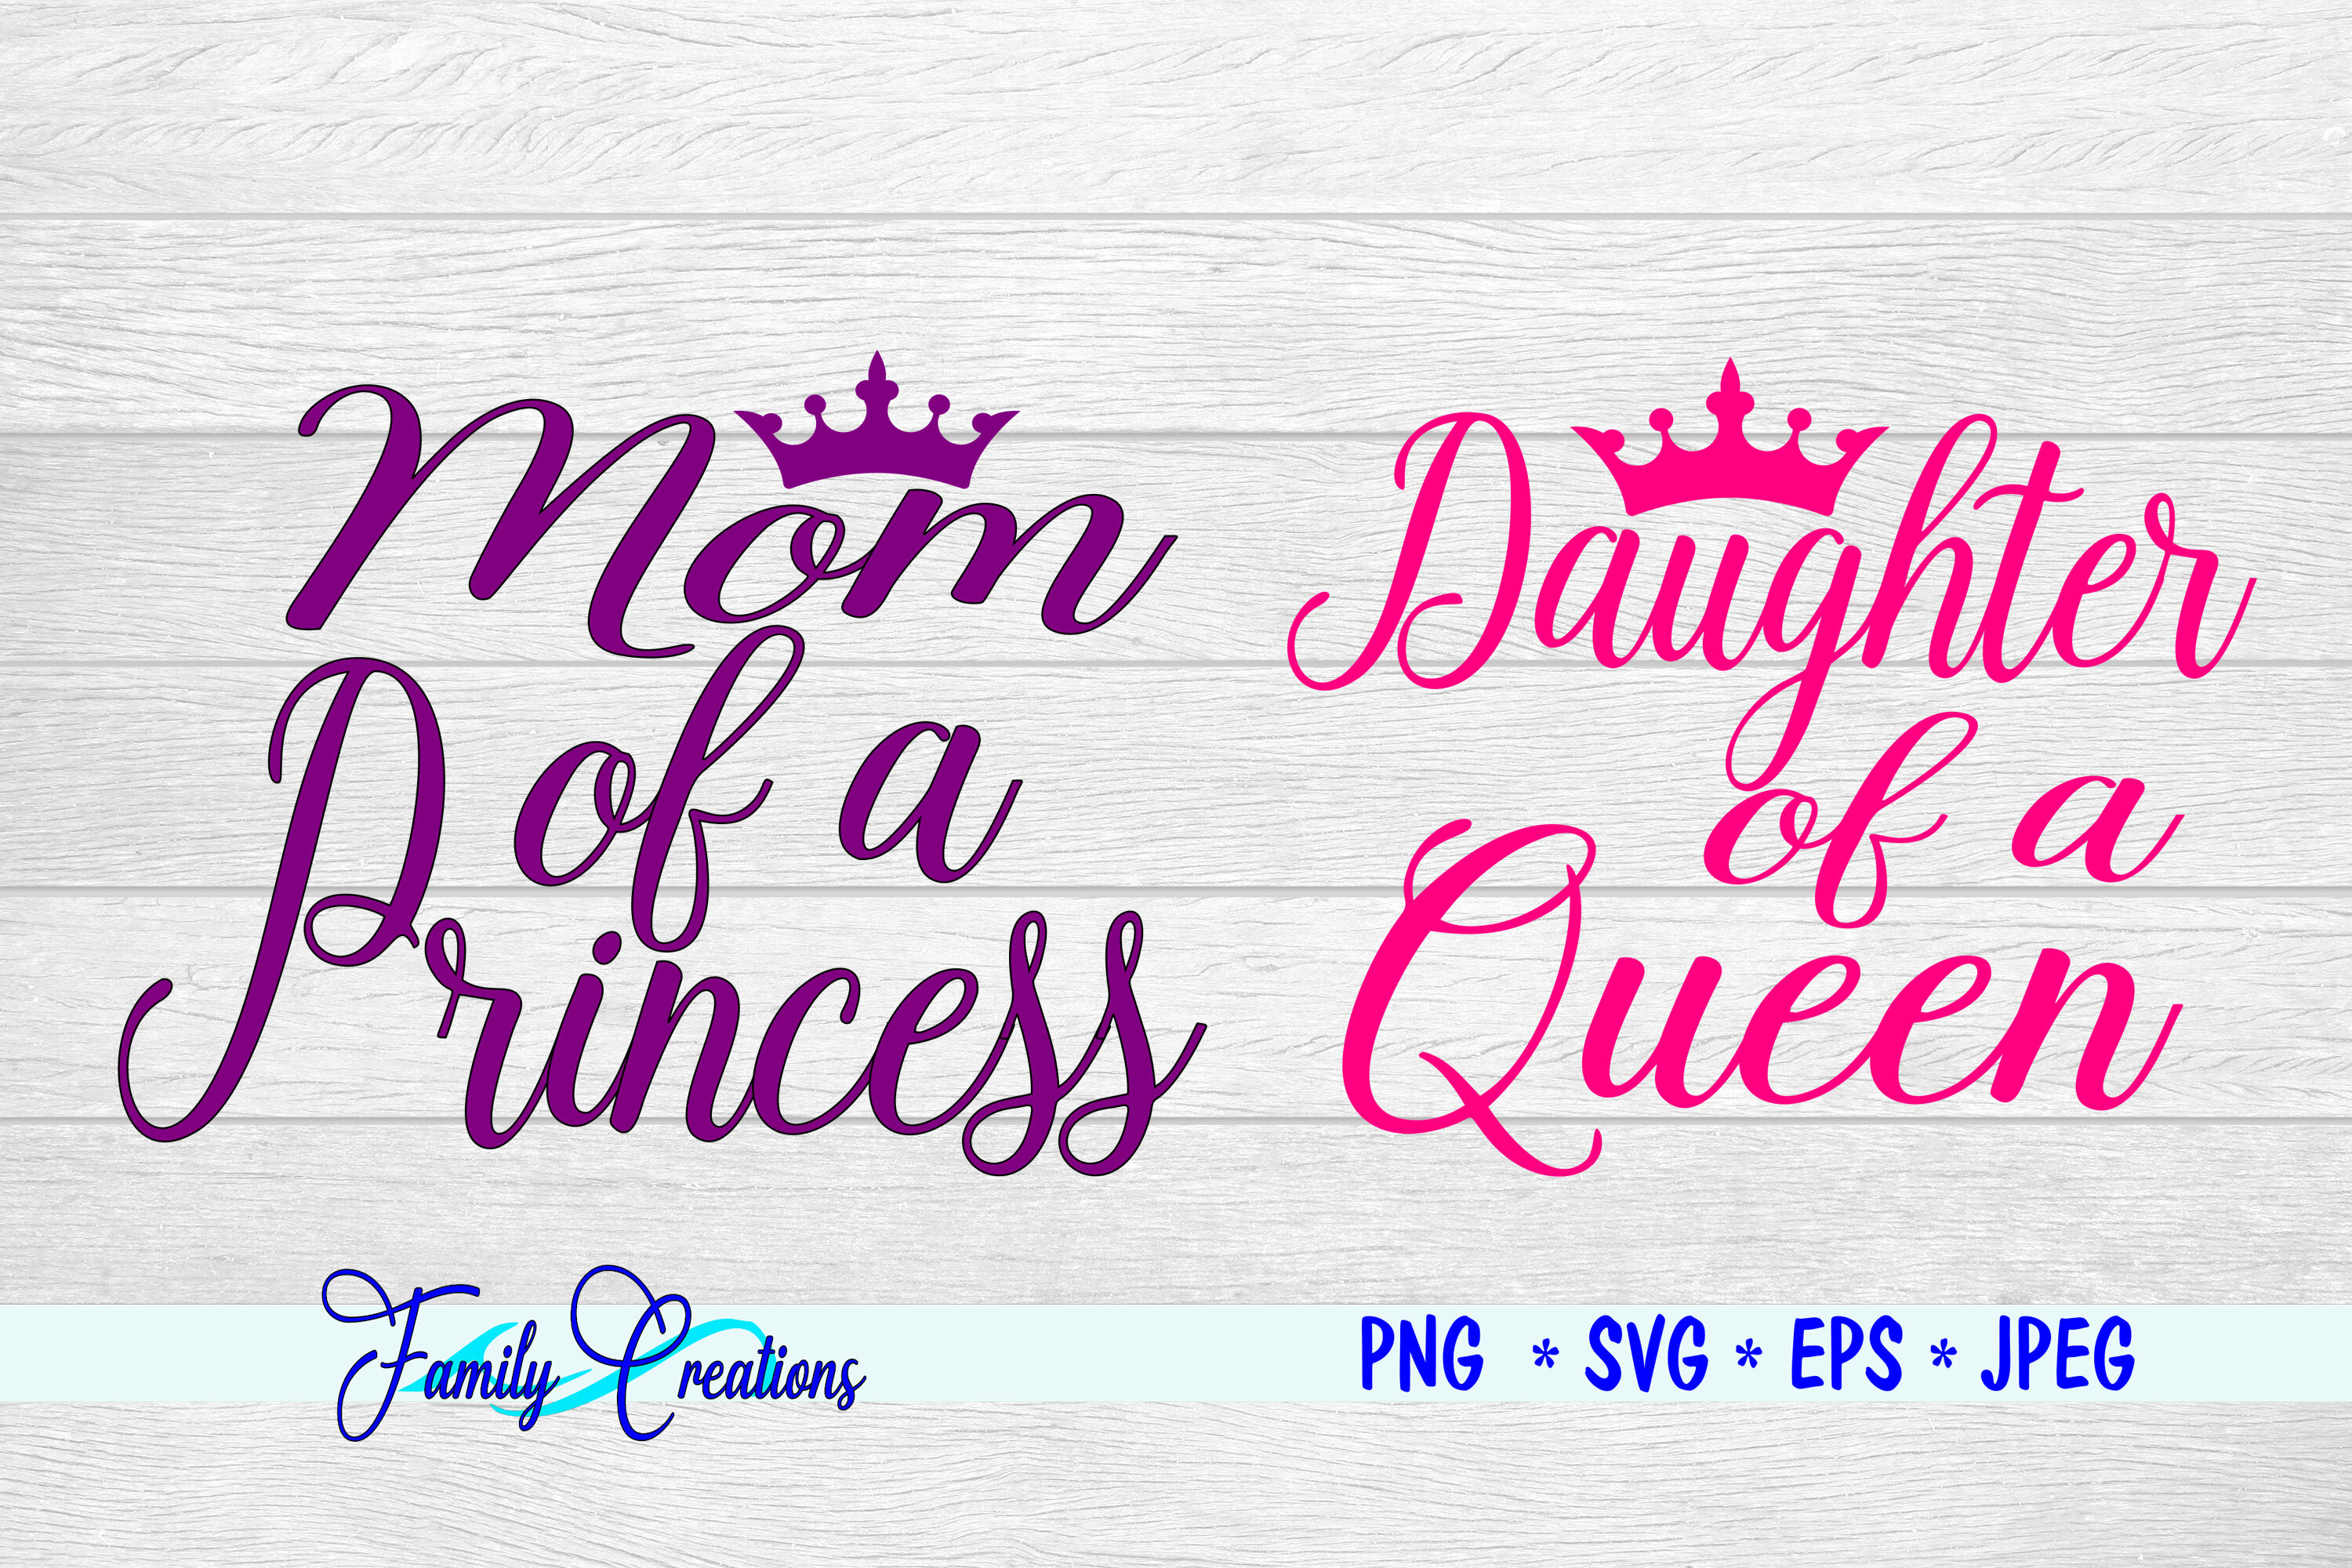 Mom Of A Princess Daughter Of A Queen By Family Creations